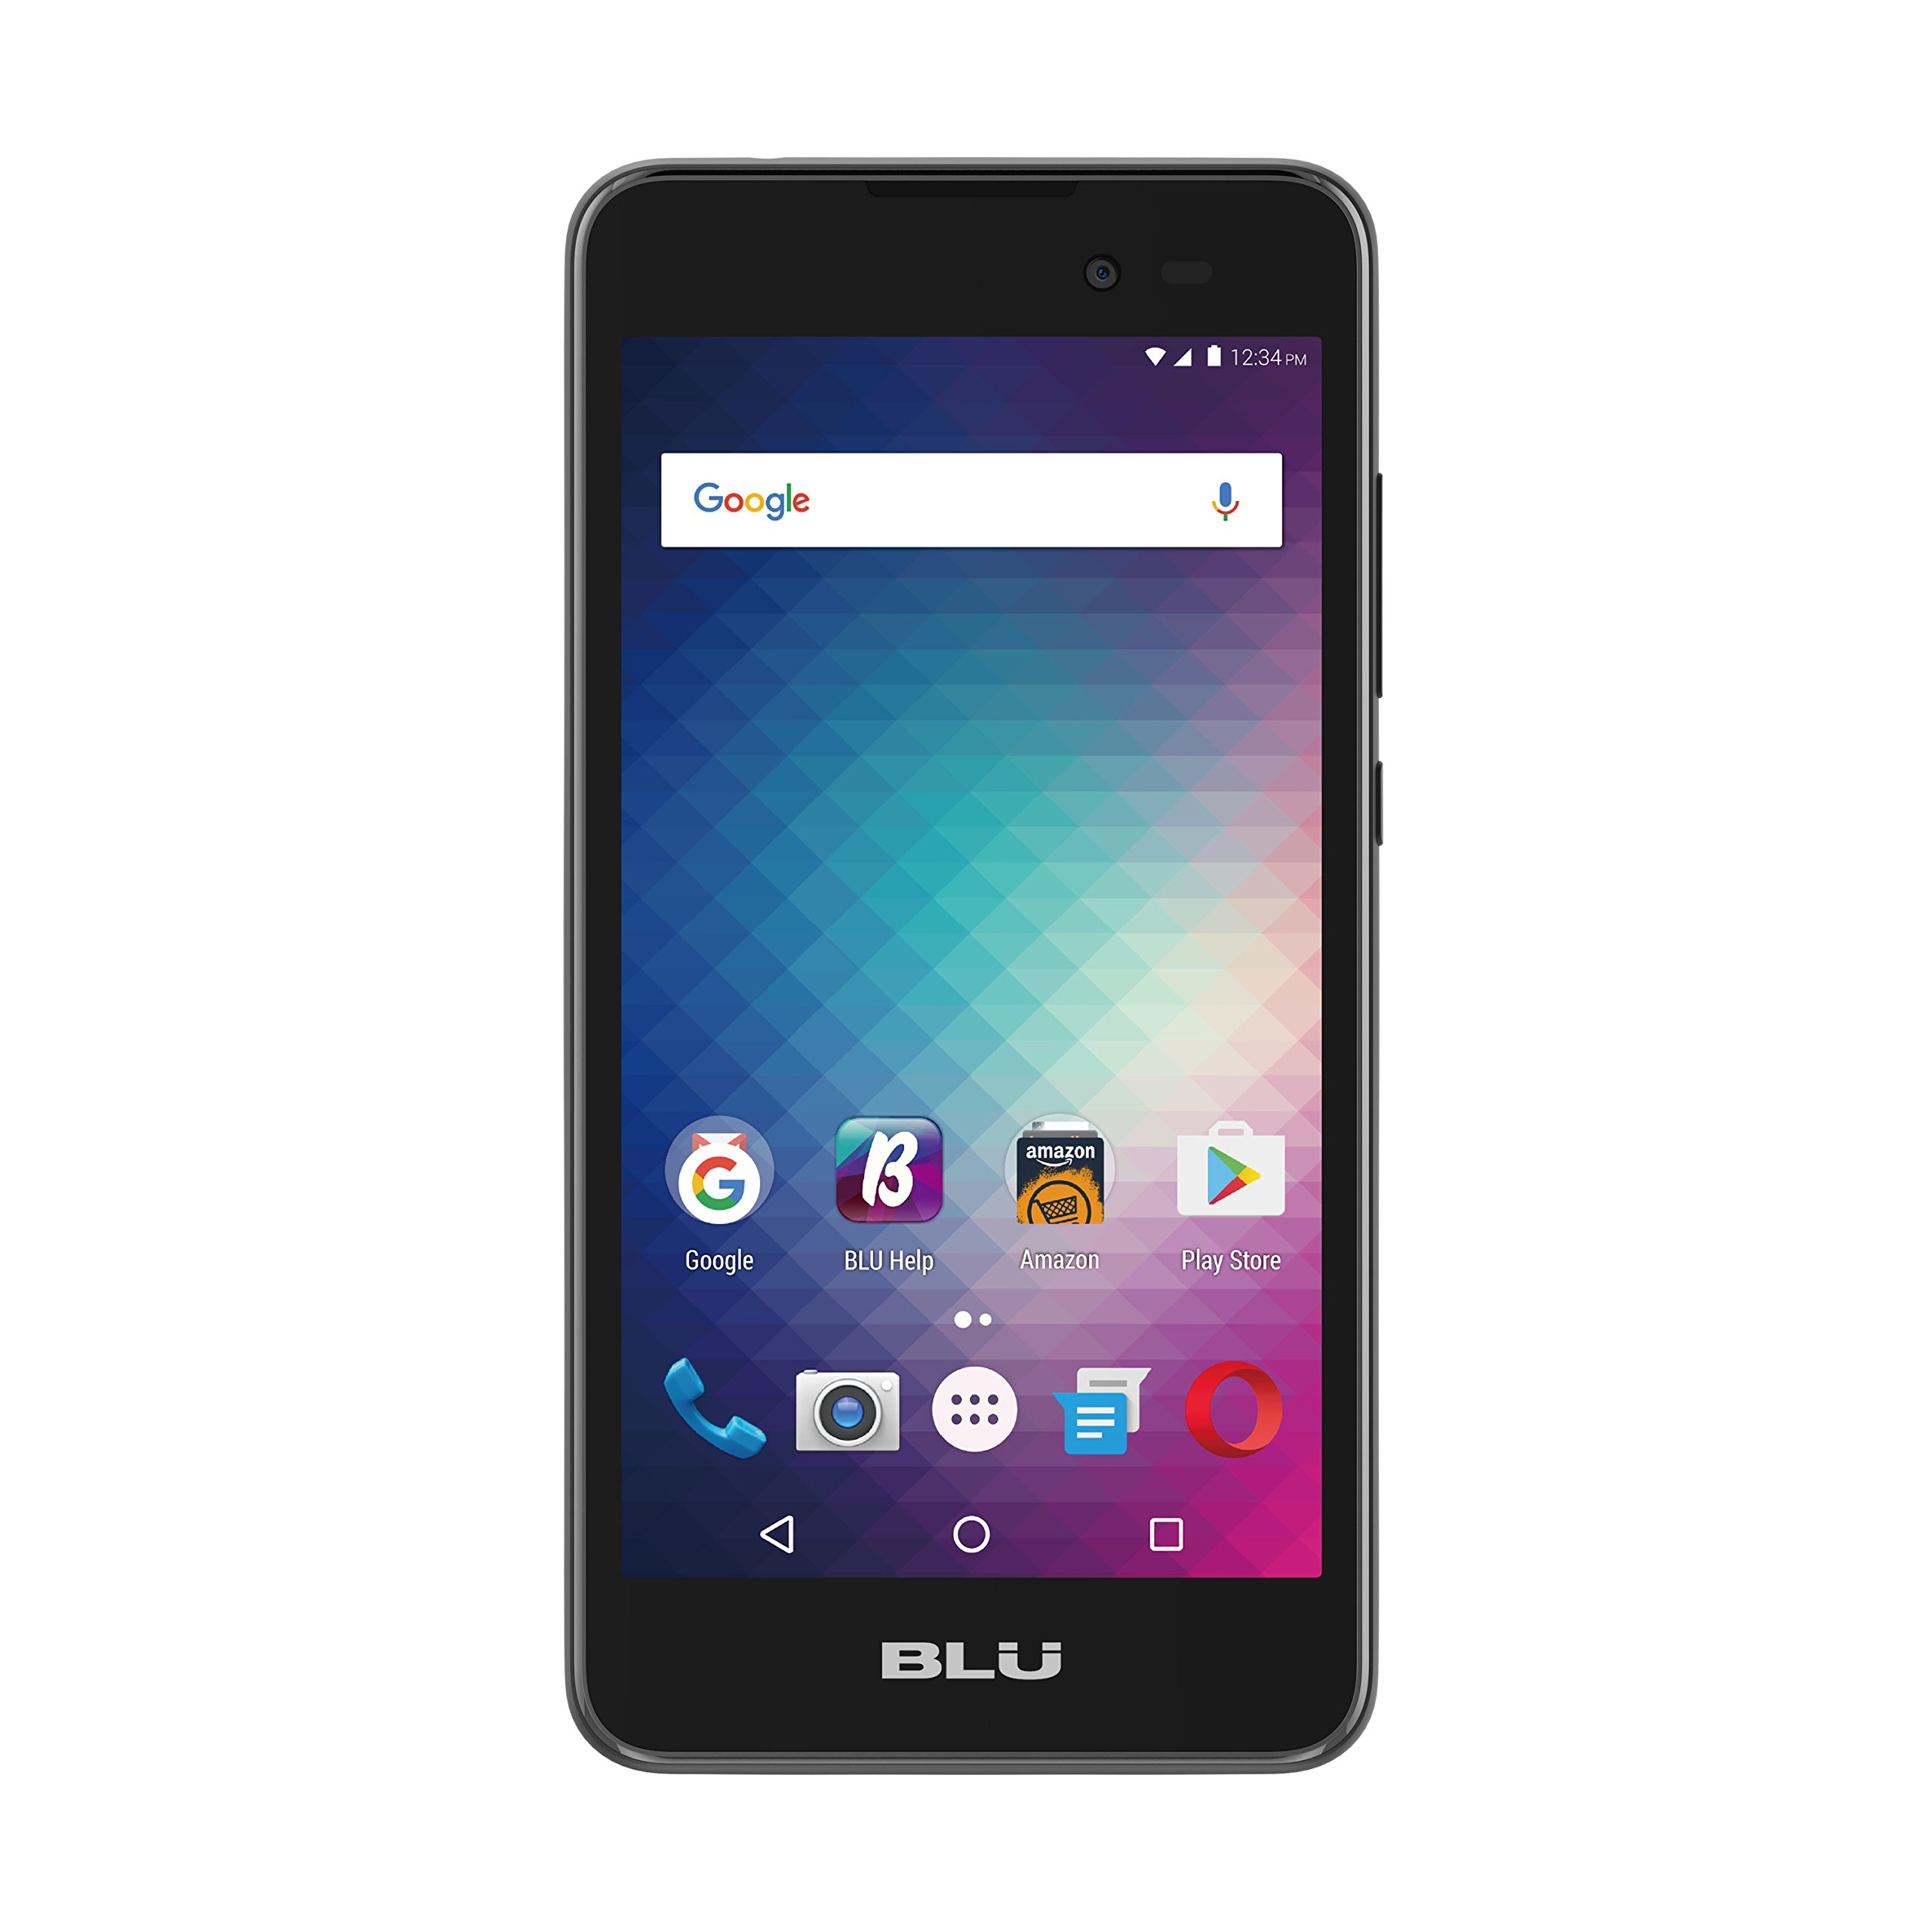 blu dash g 5 handy 5mp 4gb gsm entsperrt dual sim android d490l schwarz ebay. Black Bedroom Furniture Sets. Home Design Ideas